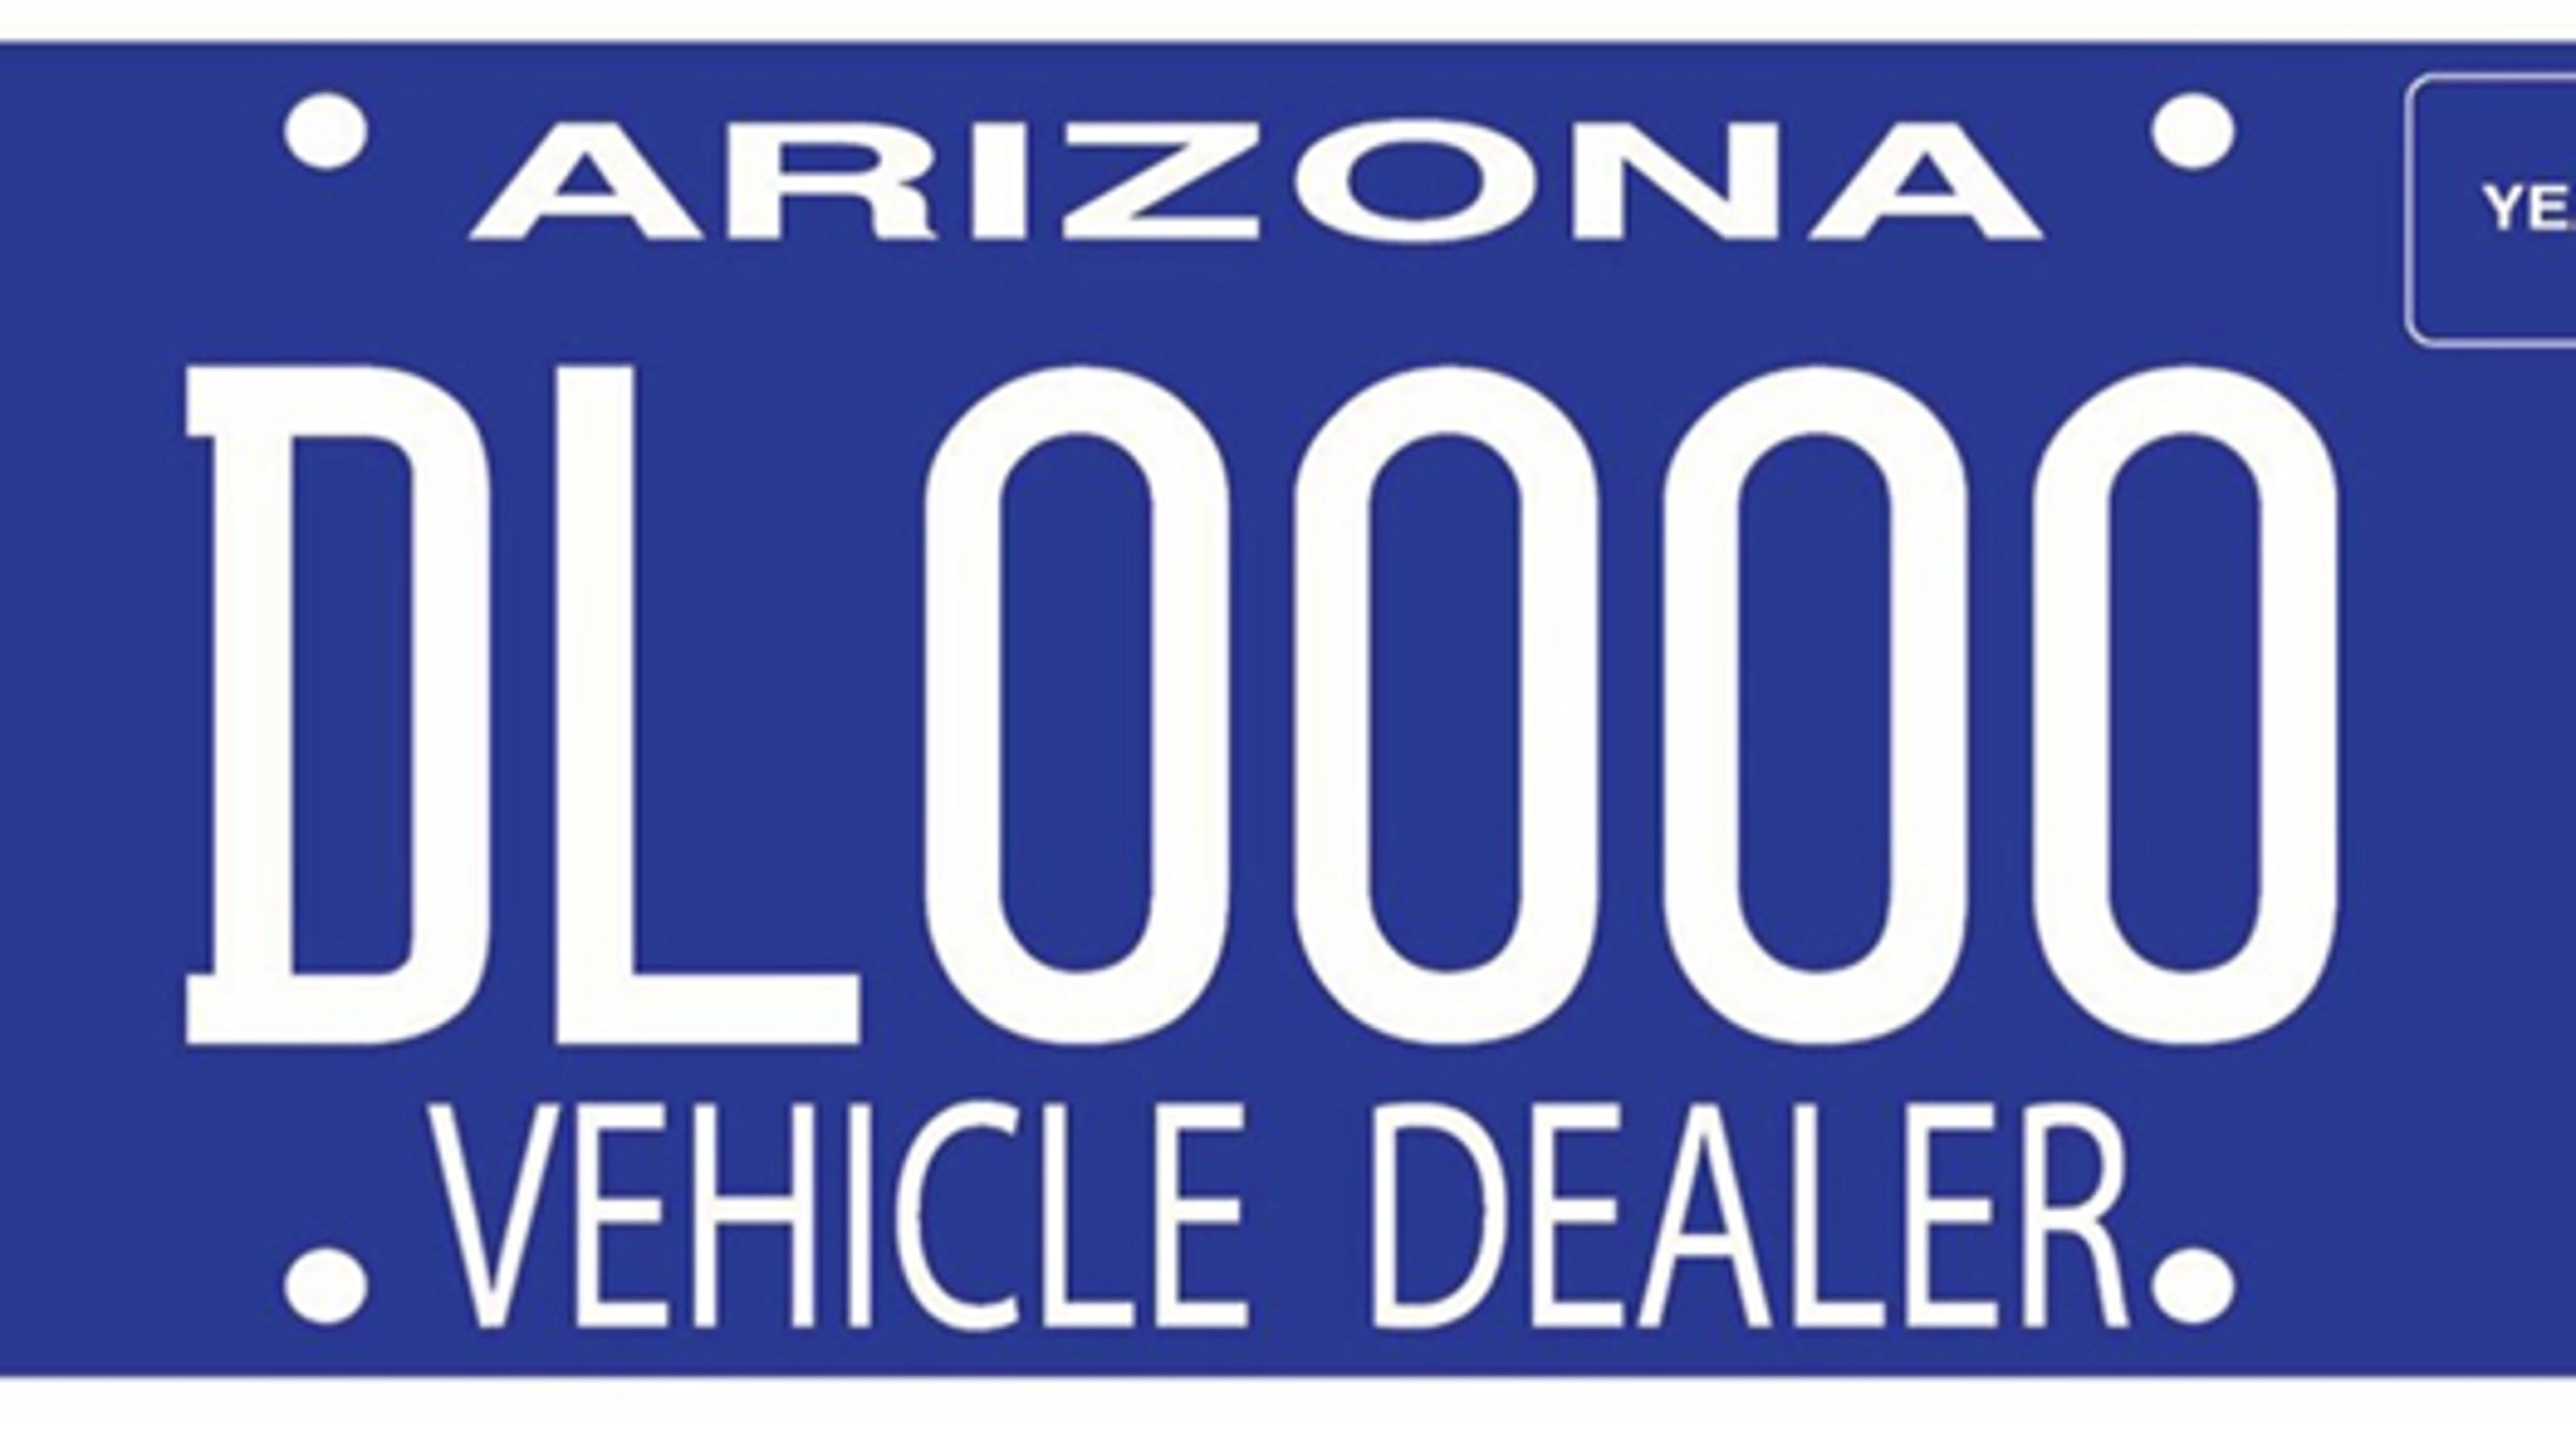 New Plates For Car In Az